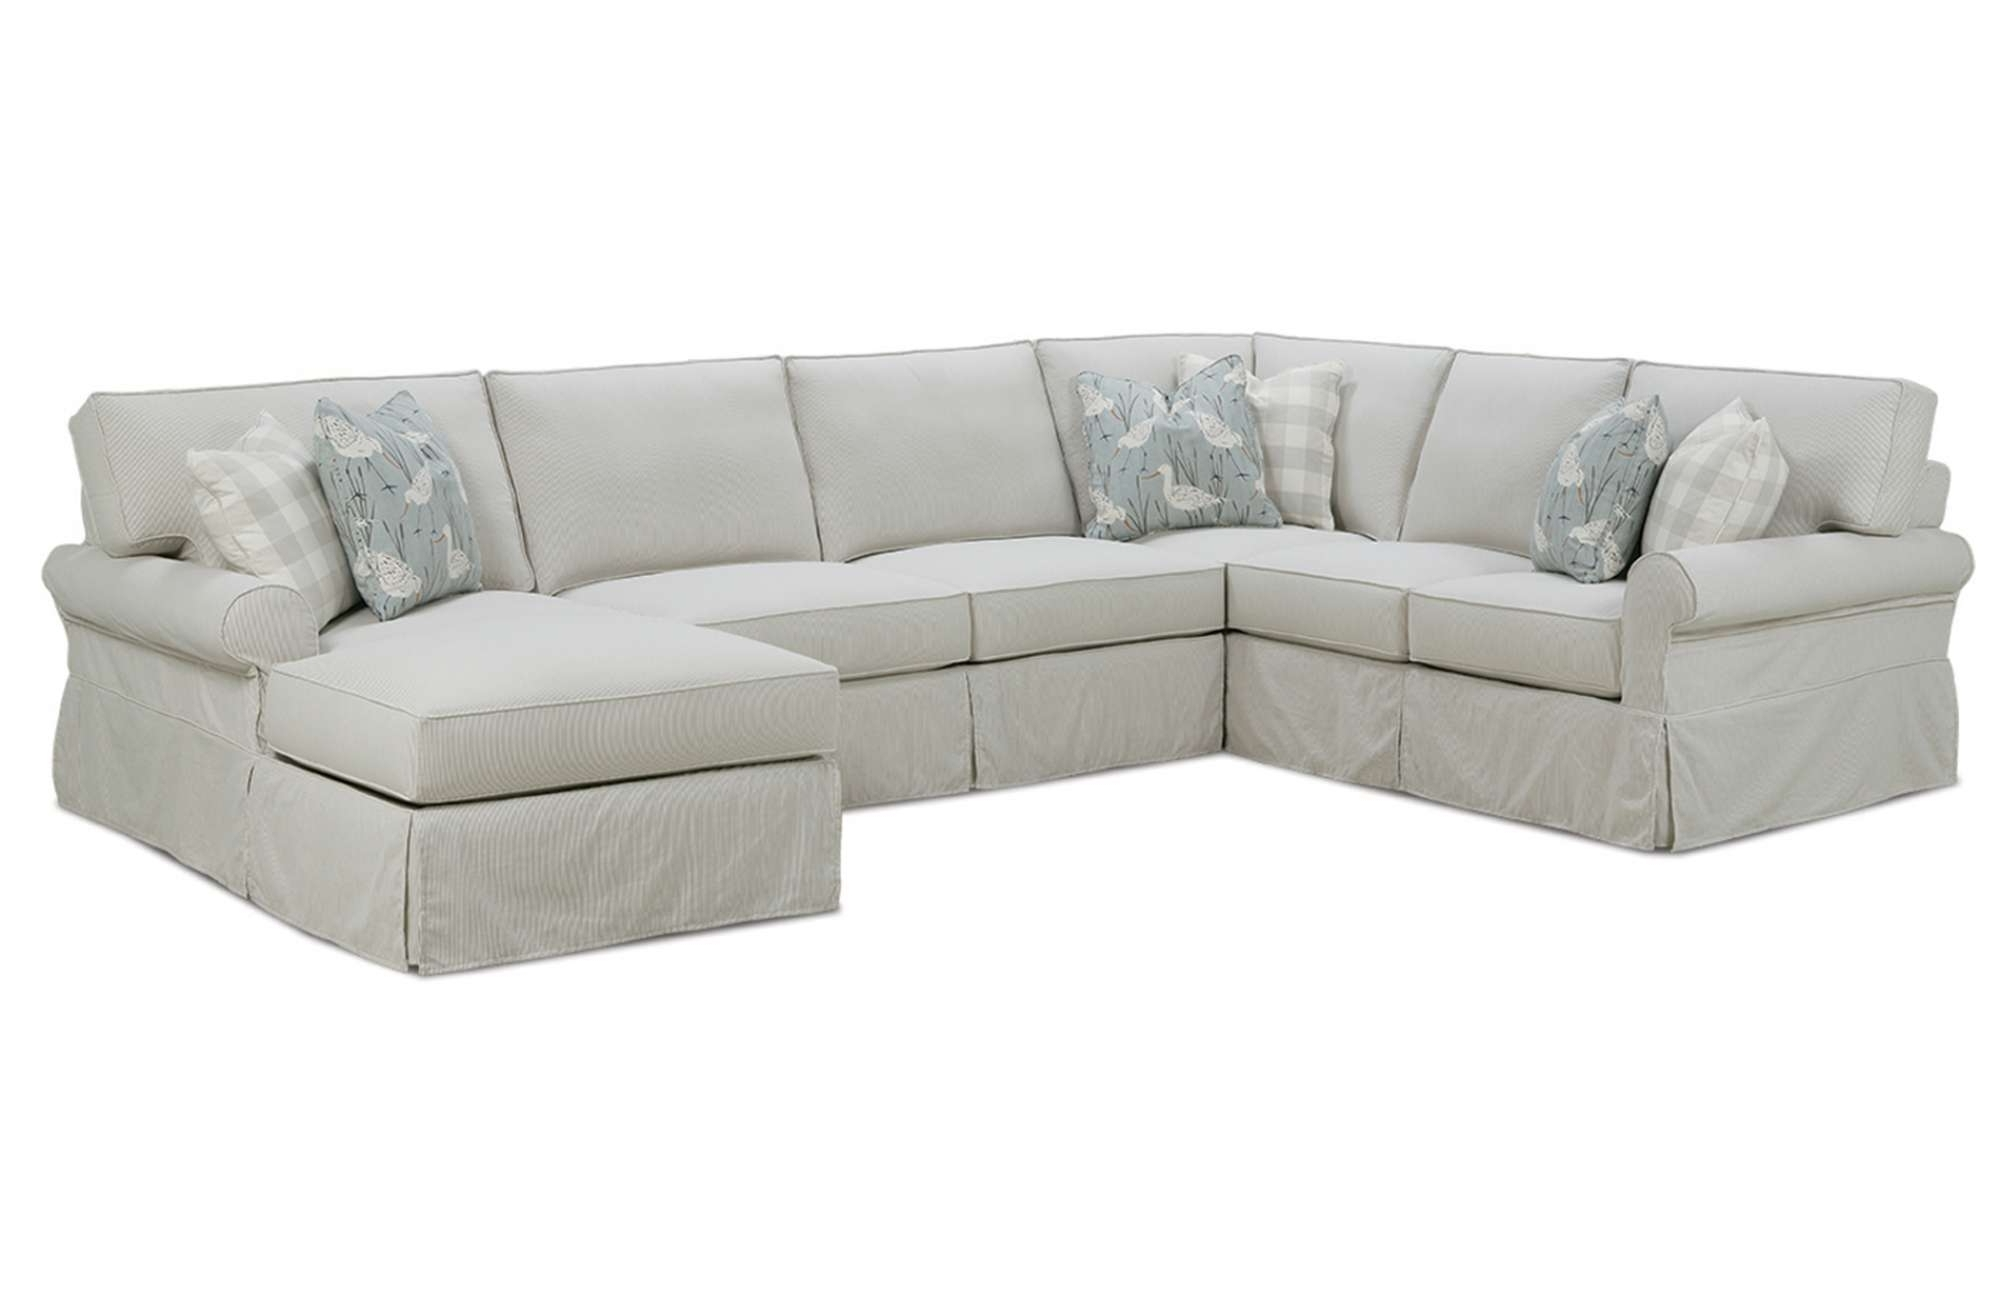 Most Recent Slipcovers For Sectional Sofas With Chaise With Easton Slipcover Sectionalrowe Furniture (View 3 of 15)